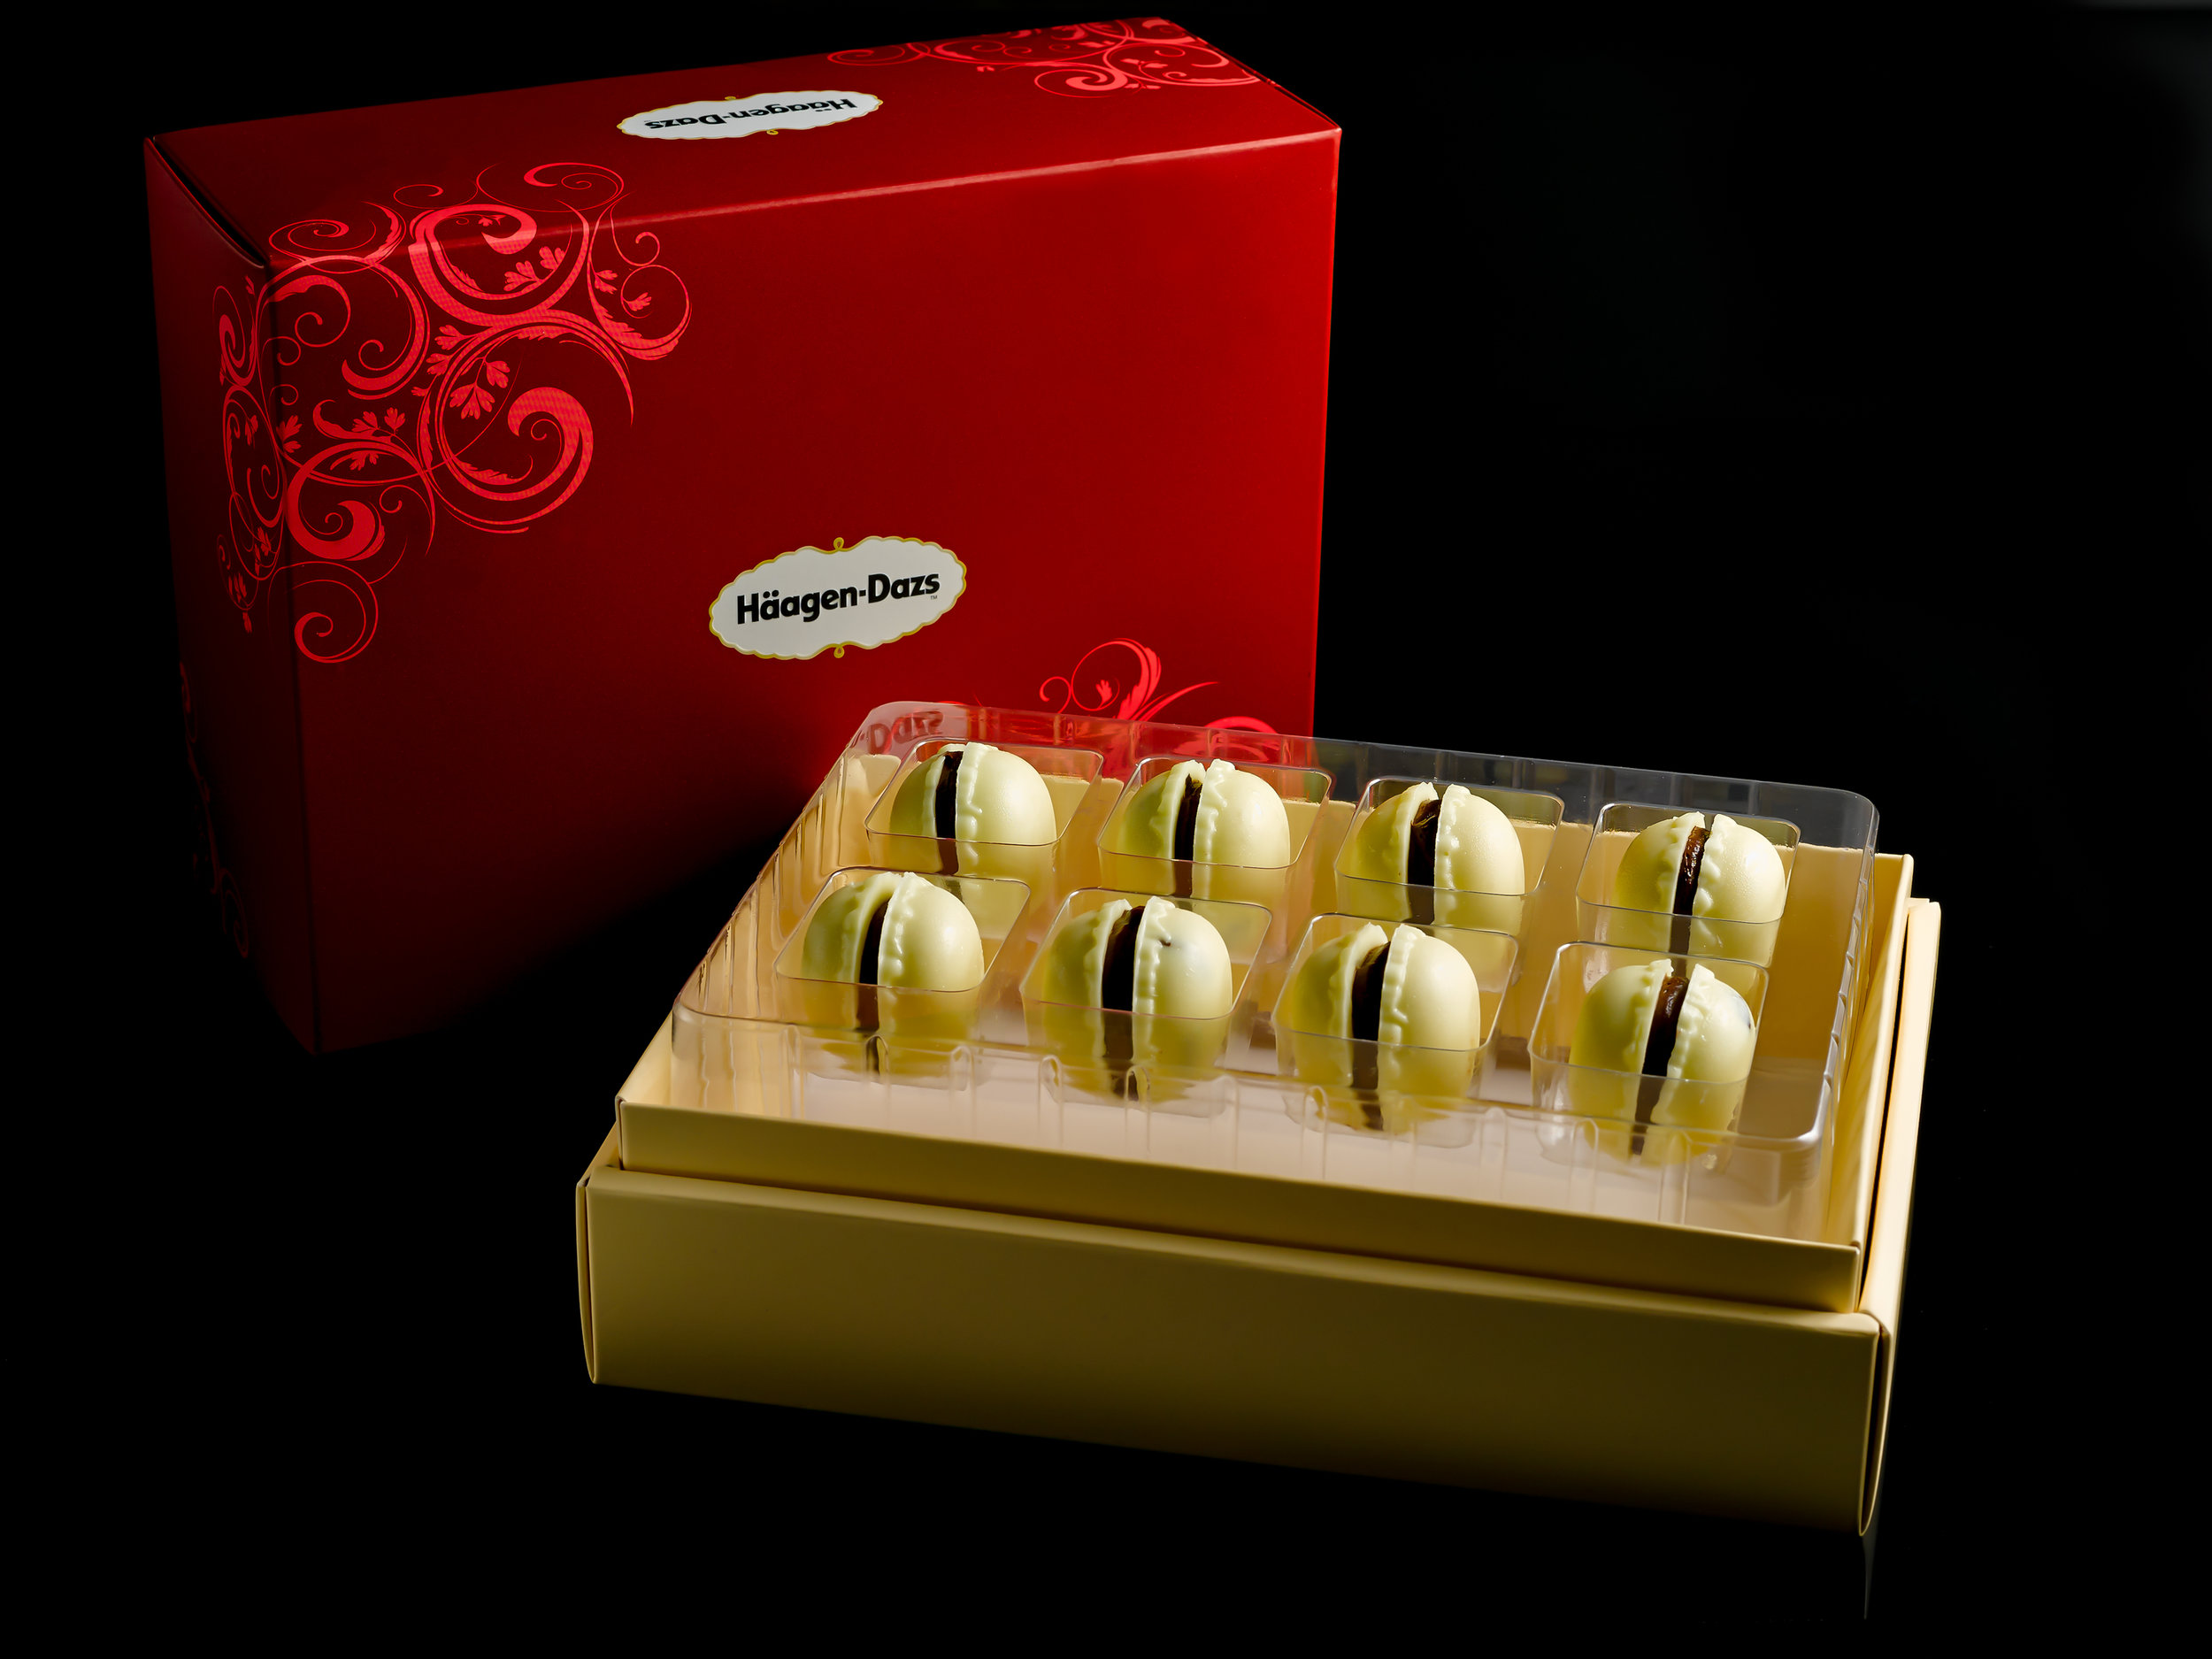 Marc de Champagne Truffle macarons were created specially for this outlet